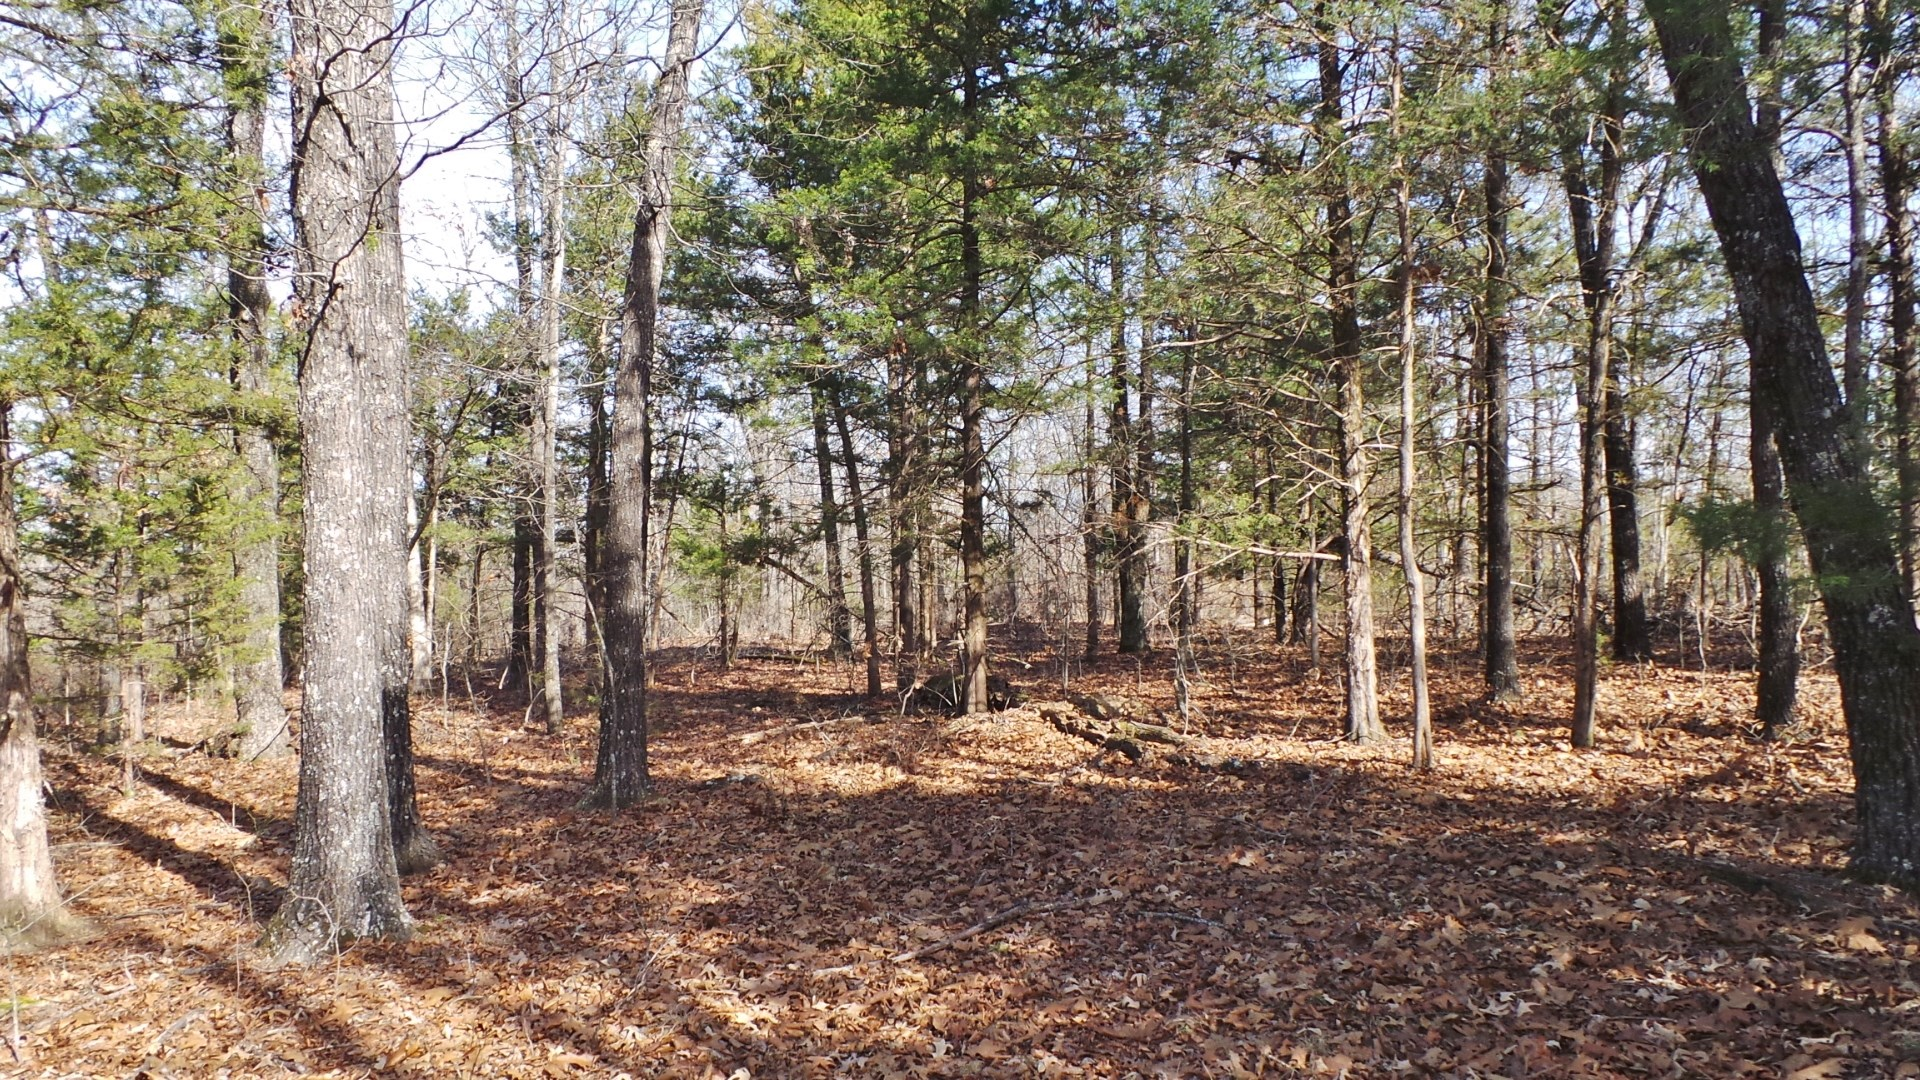 LAND FOR SALE 3 MINUTES FROM YELLVILLE AR